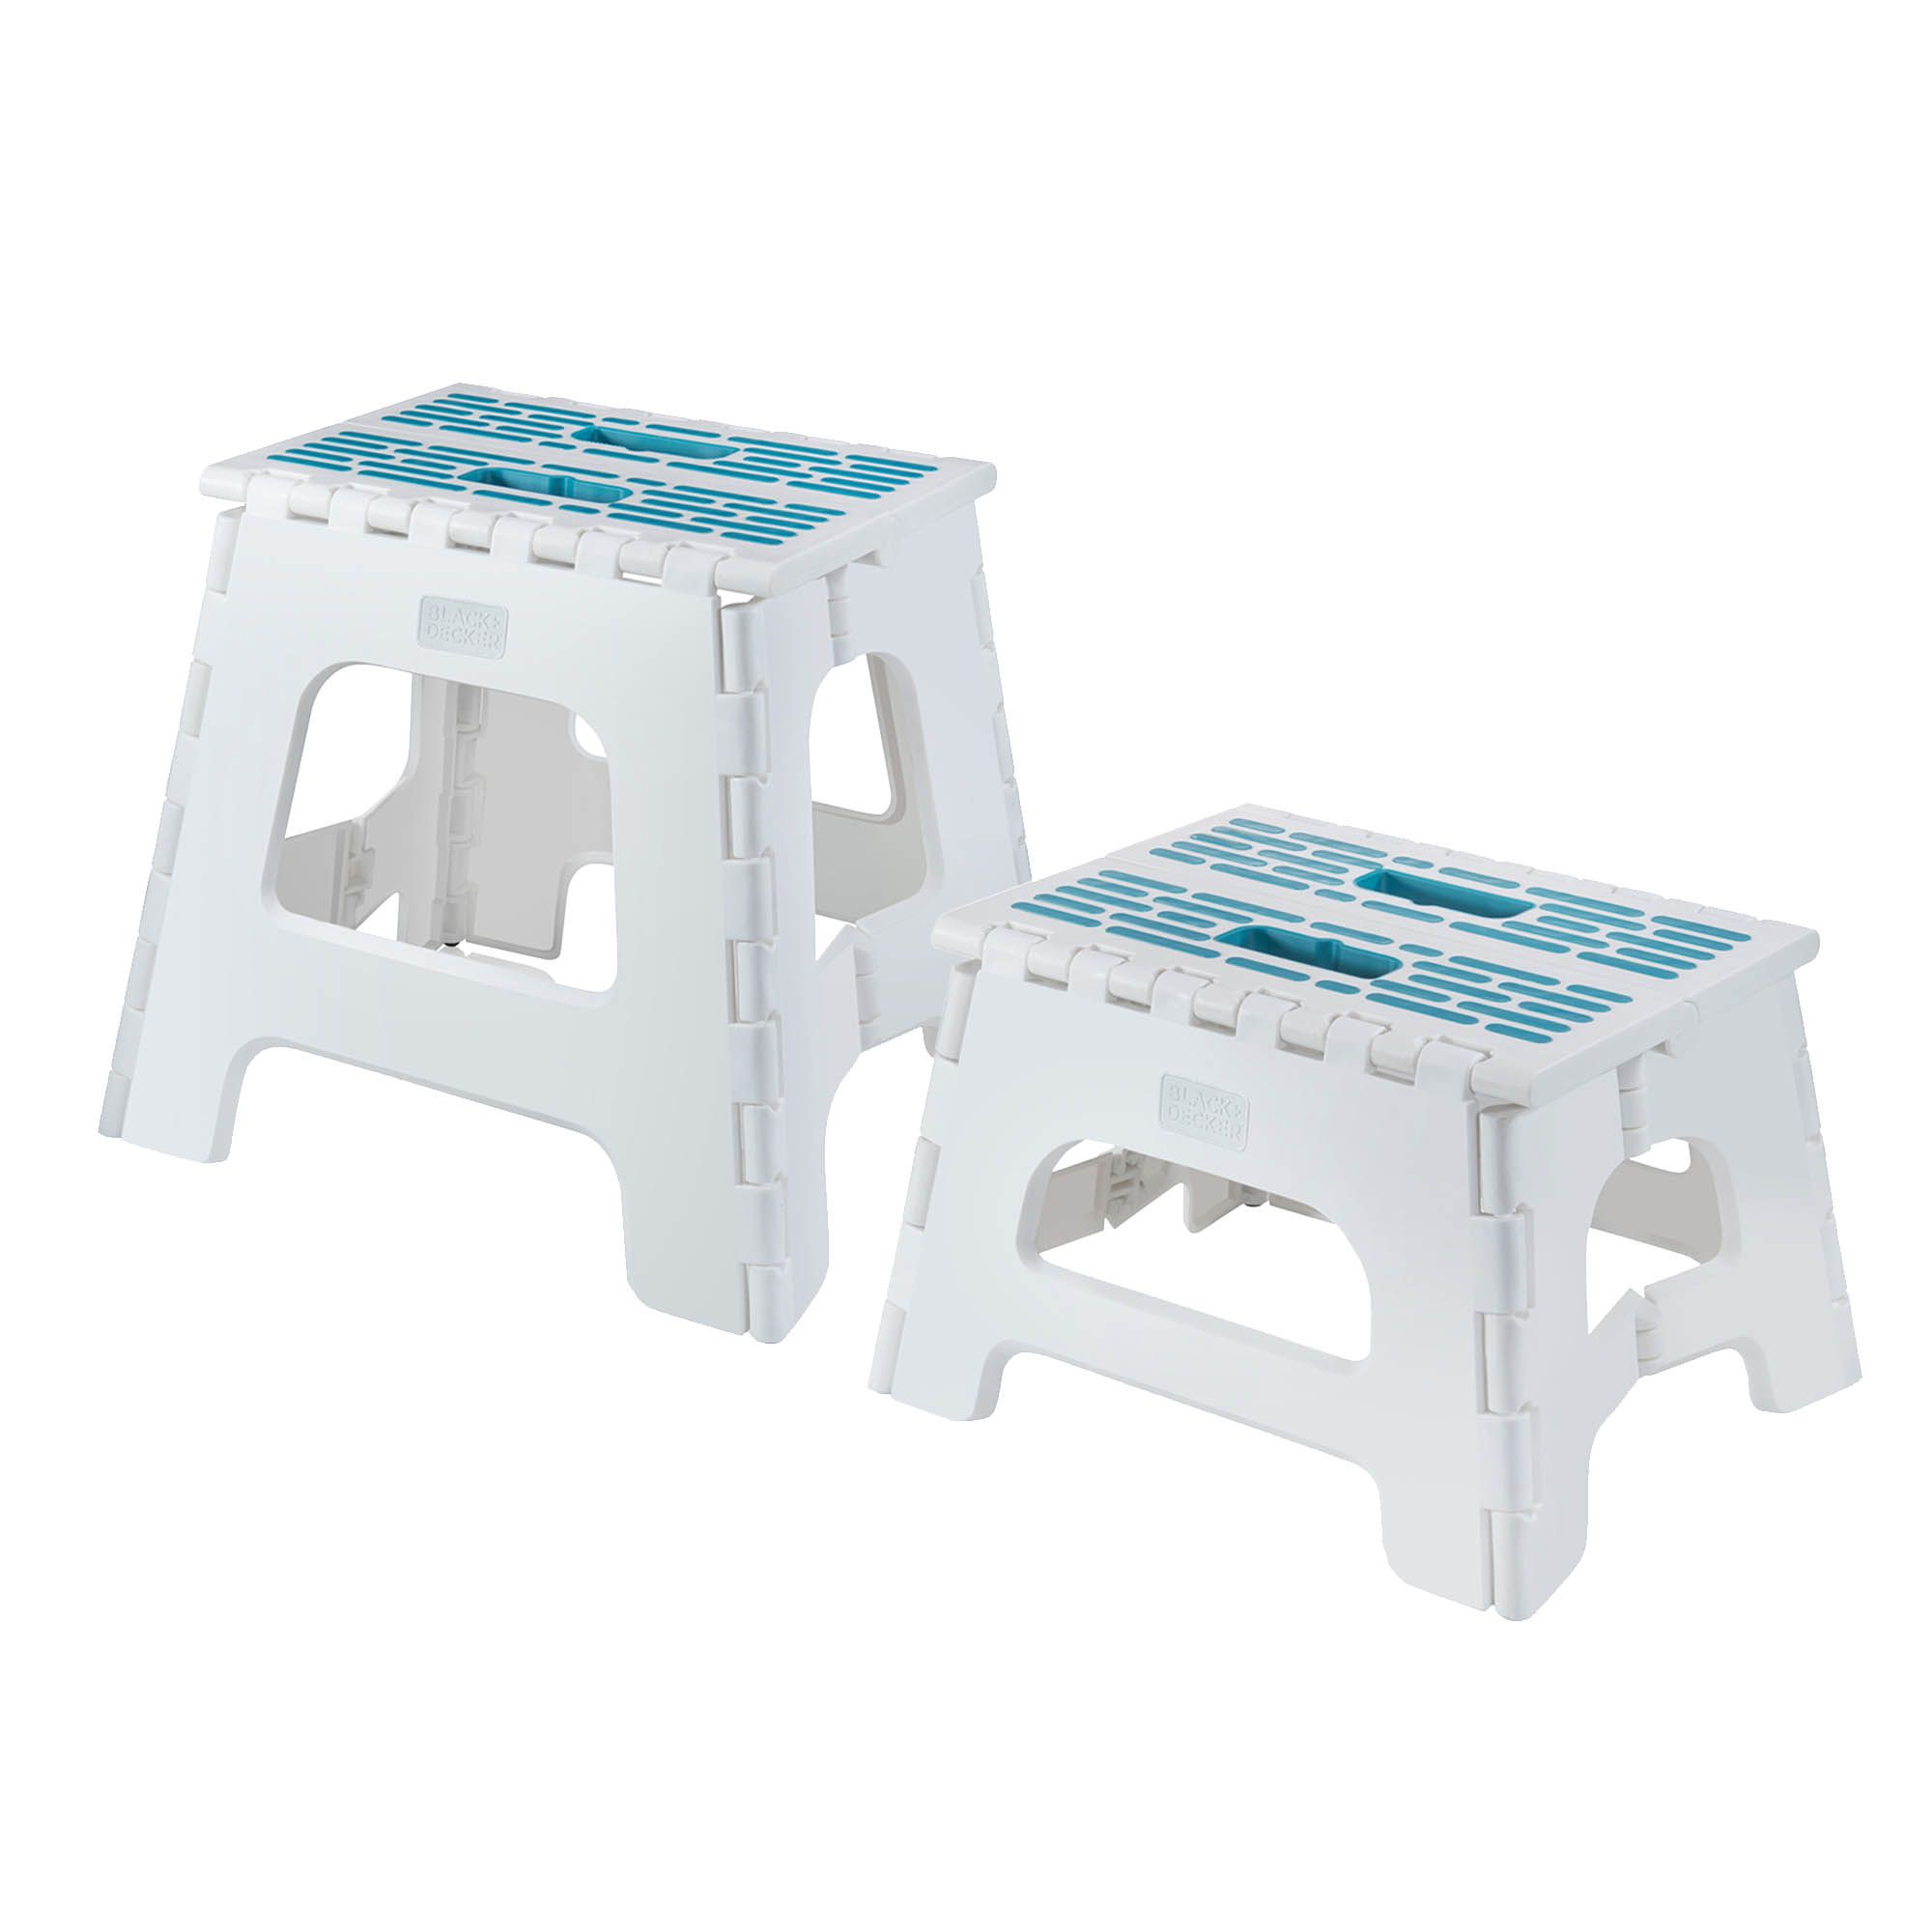 Black And Decker Folding Stool Lightweight Step Stool Heavy Duty Kitchen Step Stool With Handle Anti Skid Gray Teal 13 Home Kitchen Folding Stools